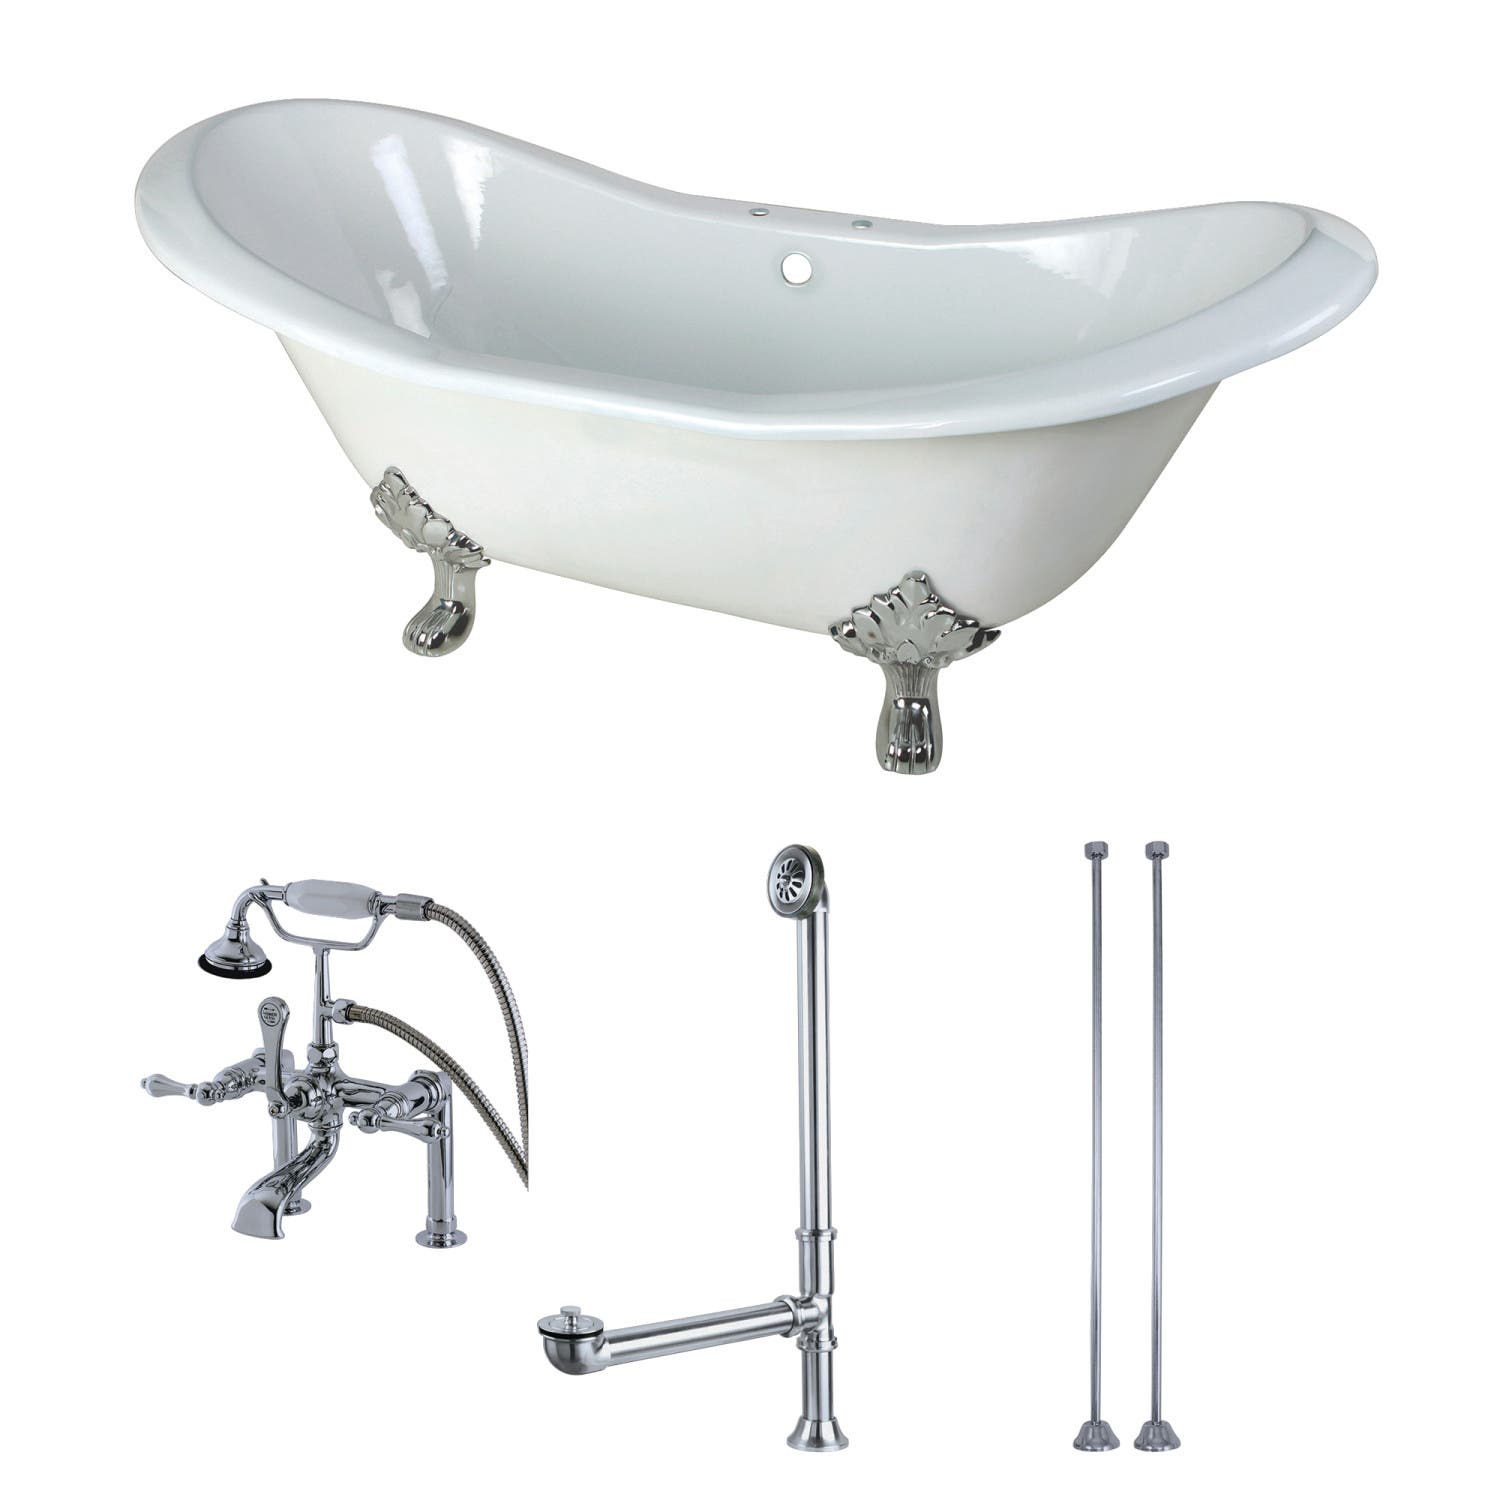 Aqua Eden 72 Inch Cast Iron Clawfoot Tub With Faucet Drain And Supply Lines Combo White Polished Chrome Kingston Br